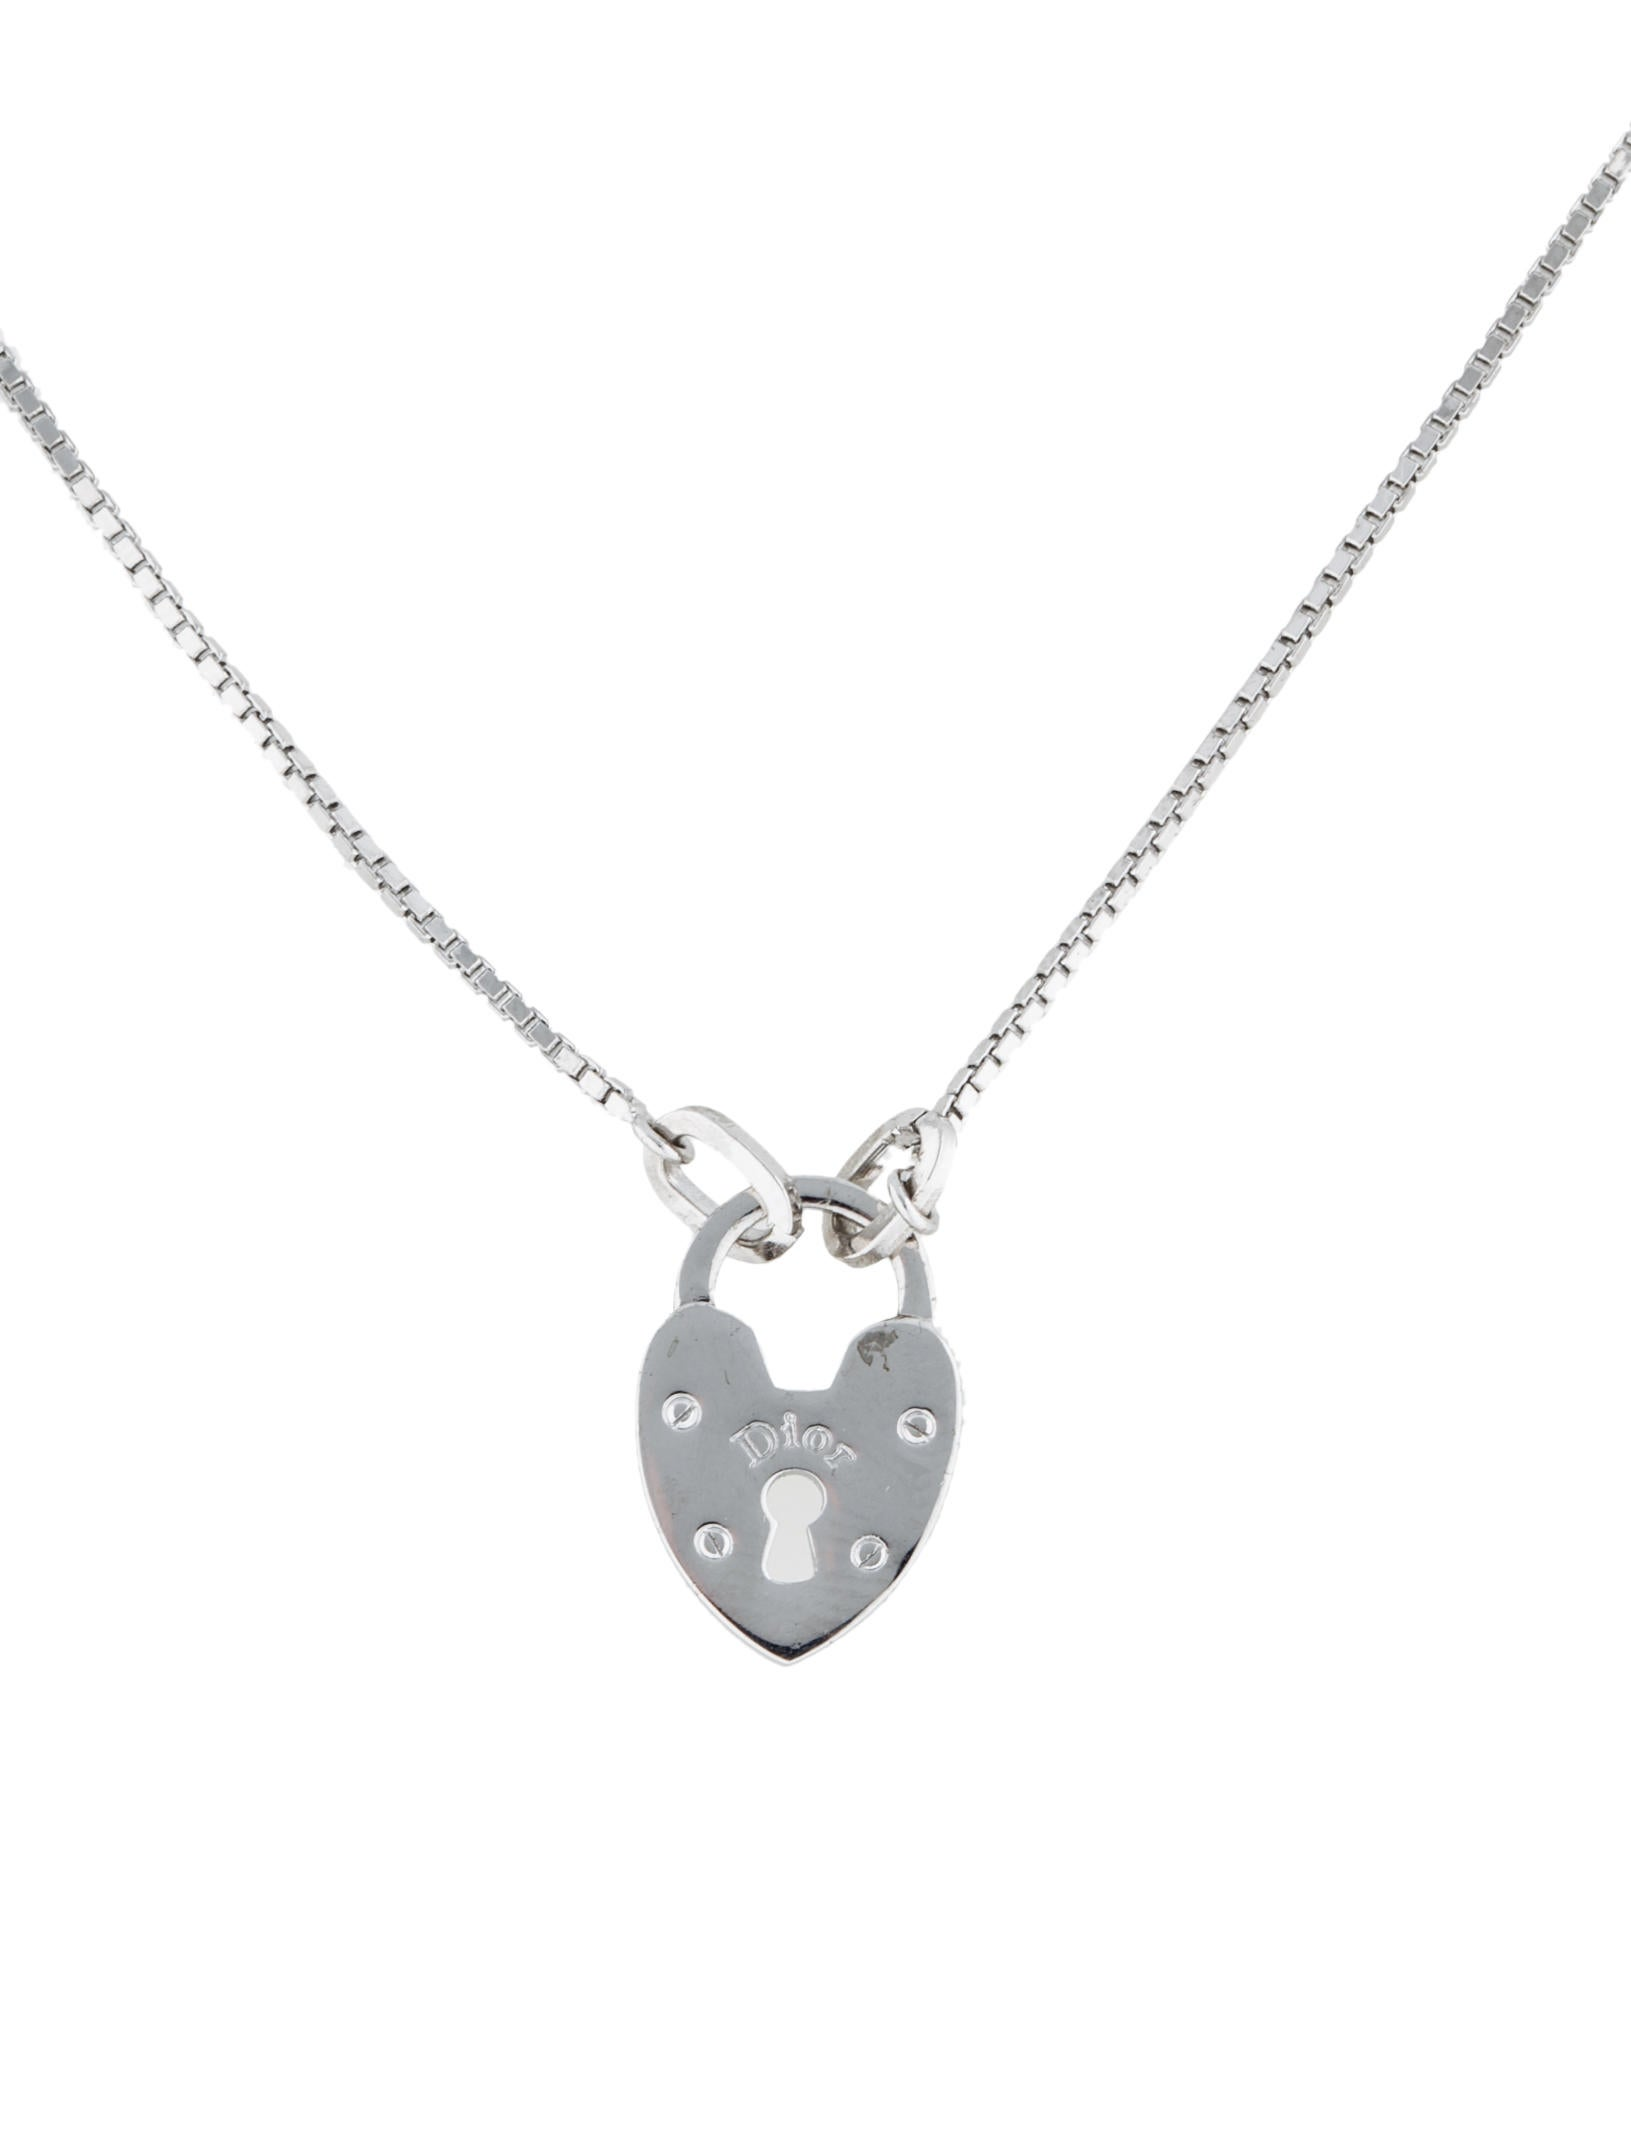 Christian dior heart lock pendant necklace necklaces chr29045 heart lock pendant necklace aloadofball Gallery